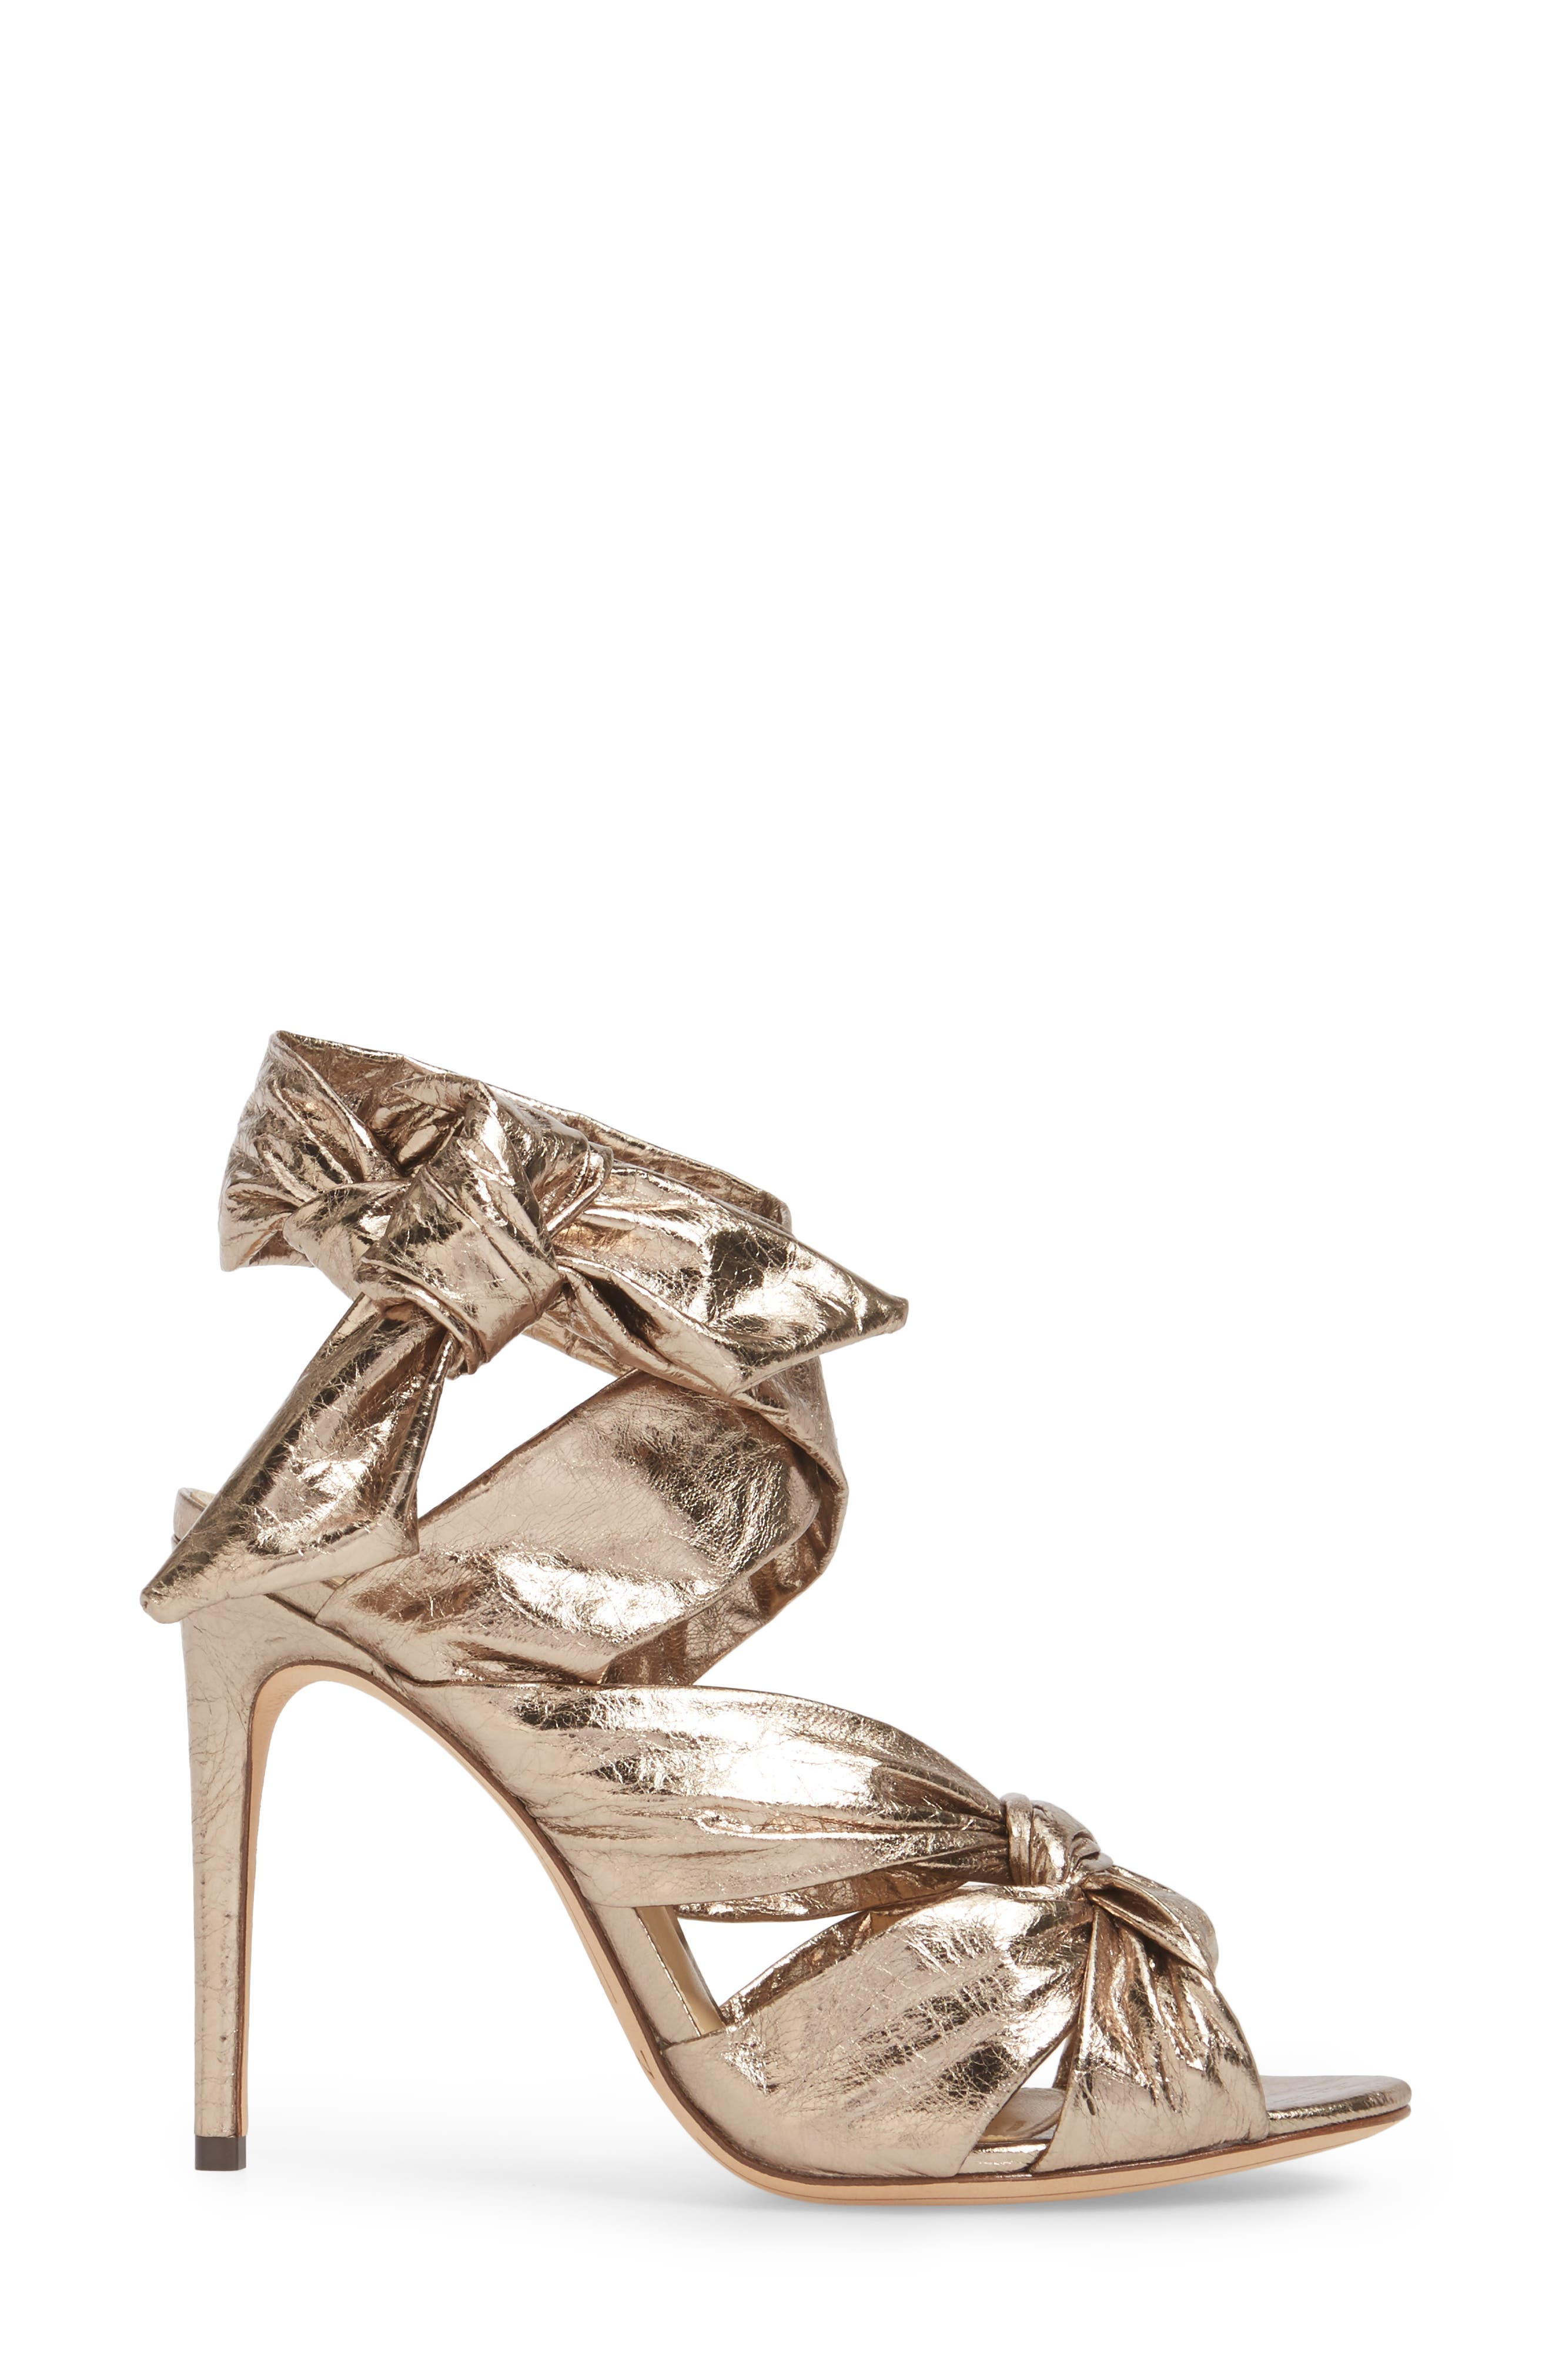 Alternate Image 3  - Alexandre Birman Maleah Sandal (Women)